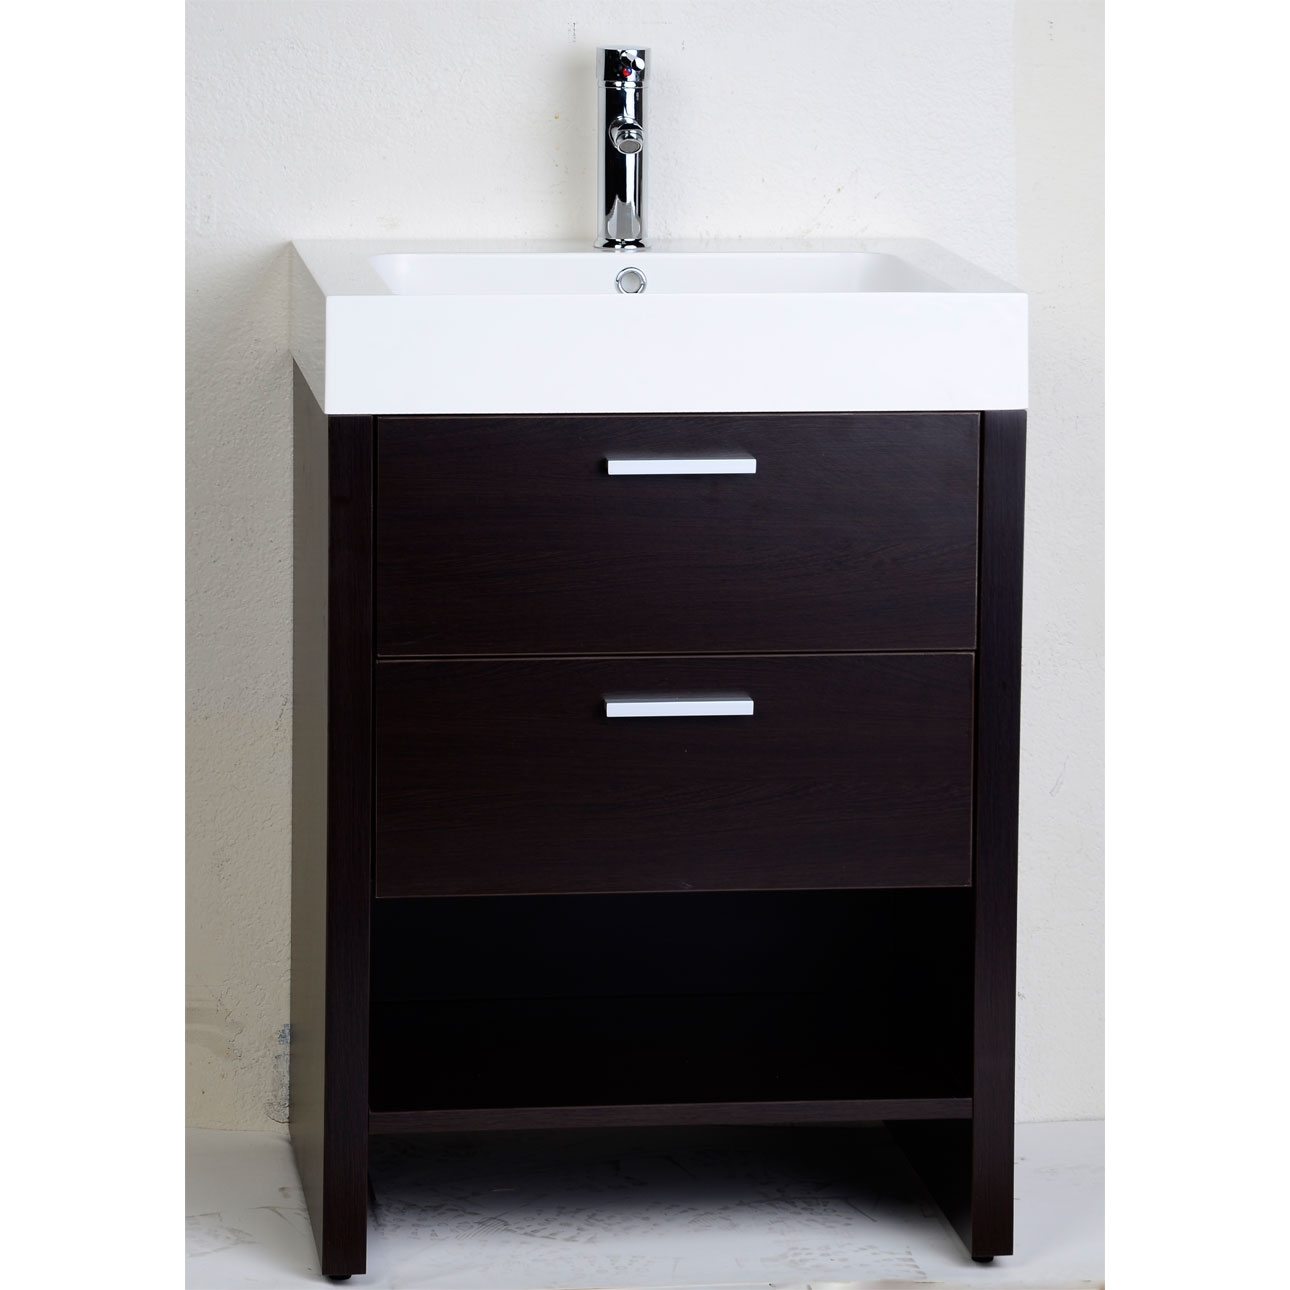 Permalink to 24 Inch Bathroom Vanity Ideas